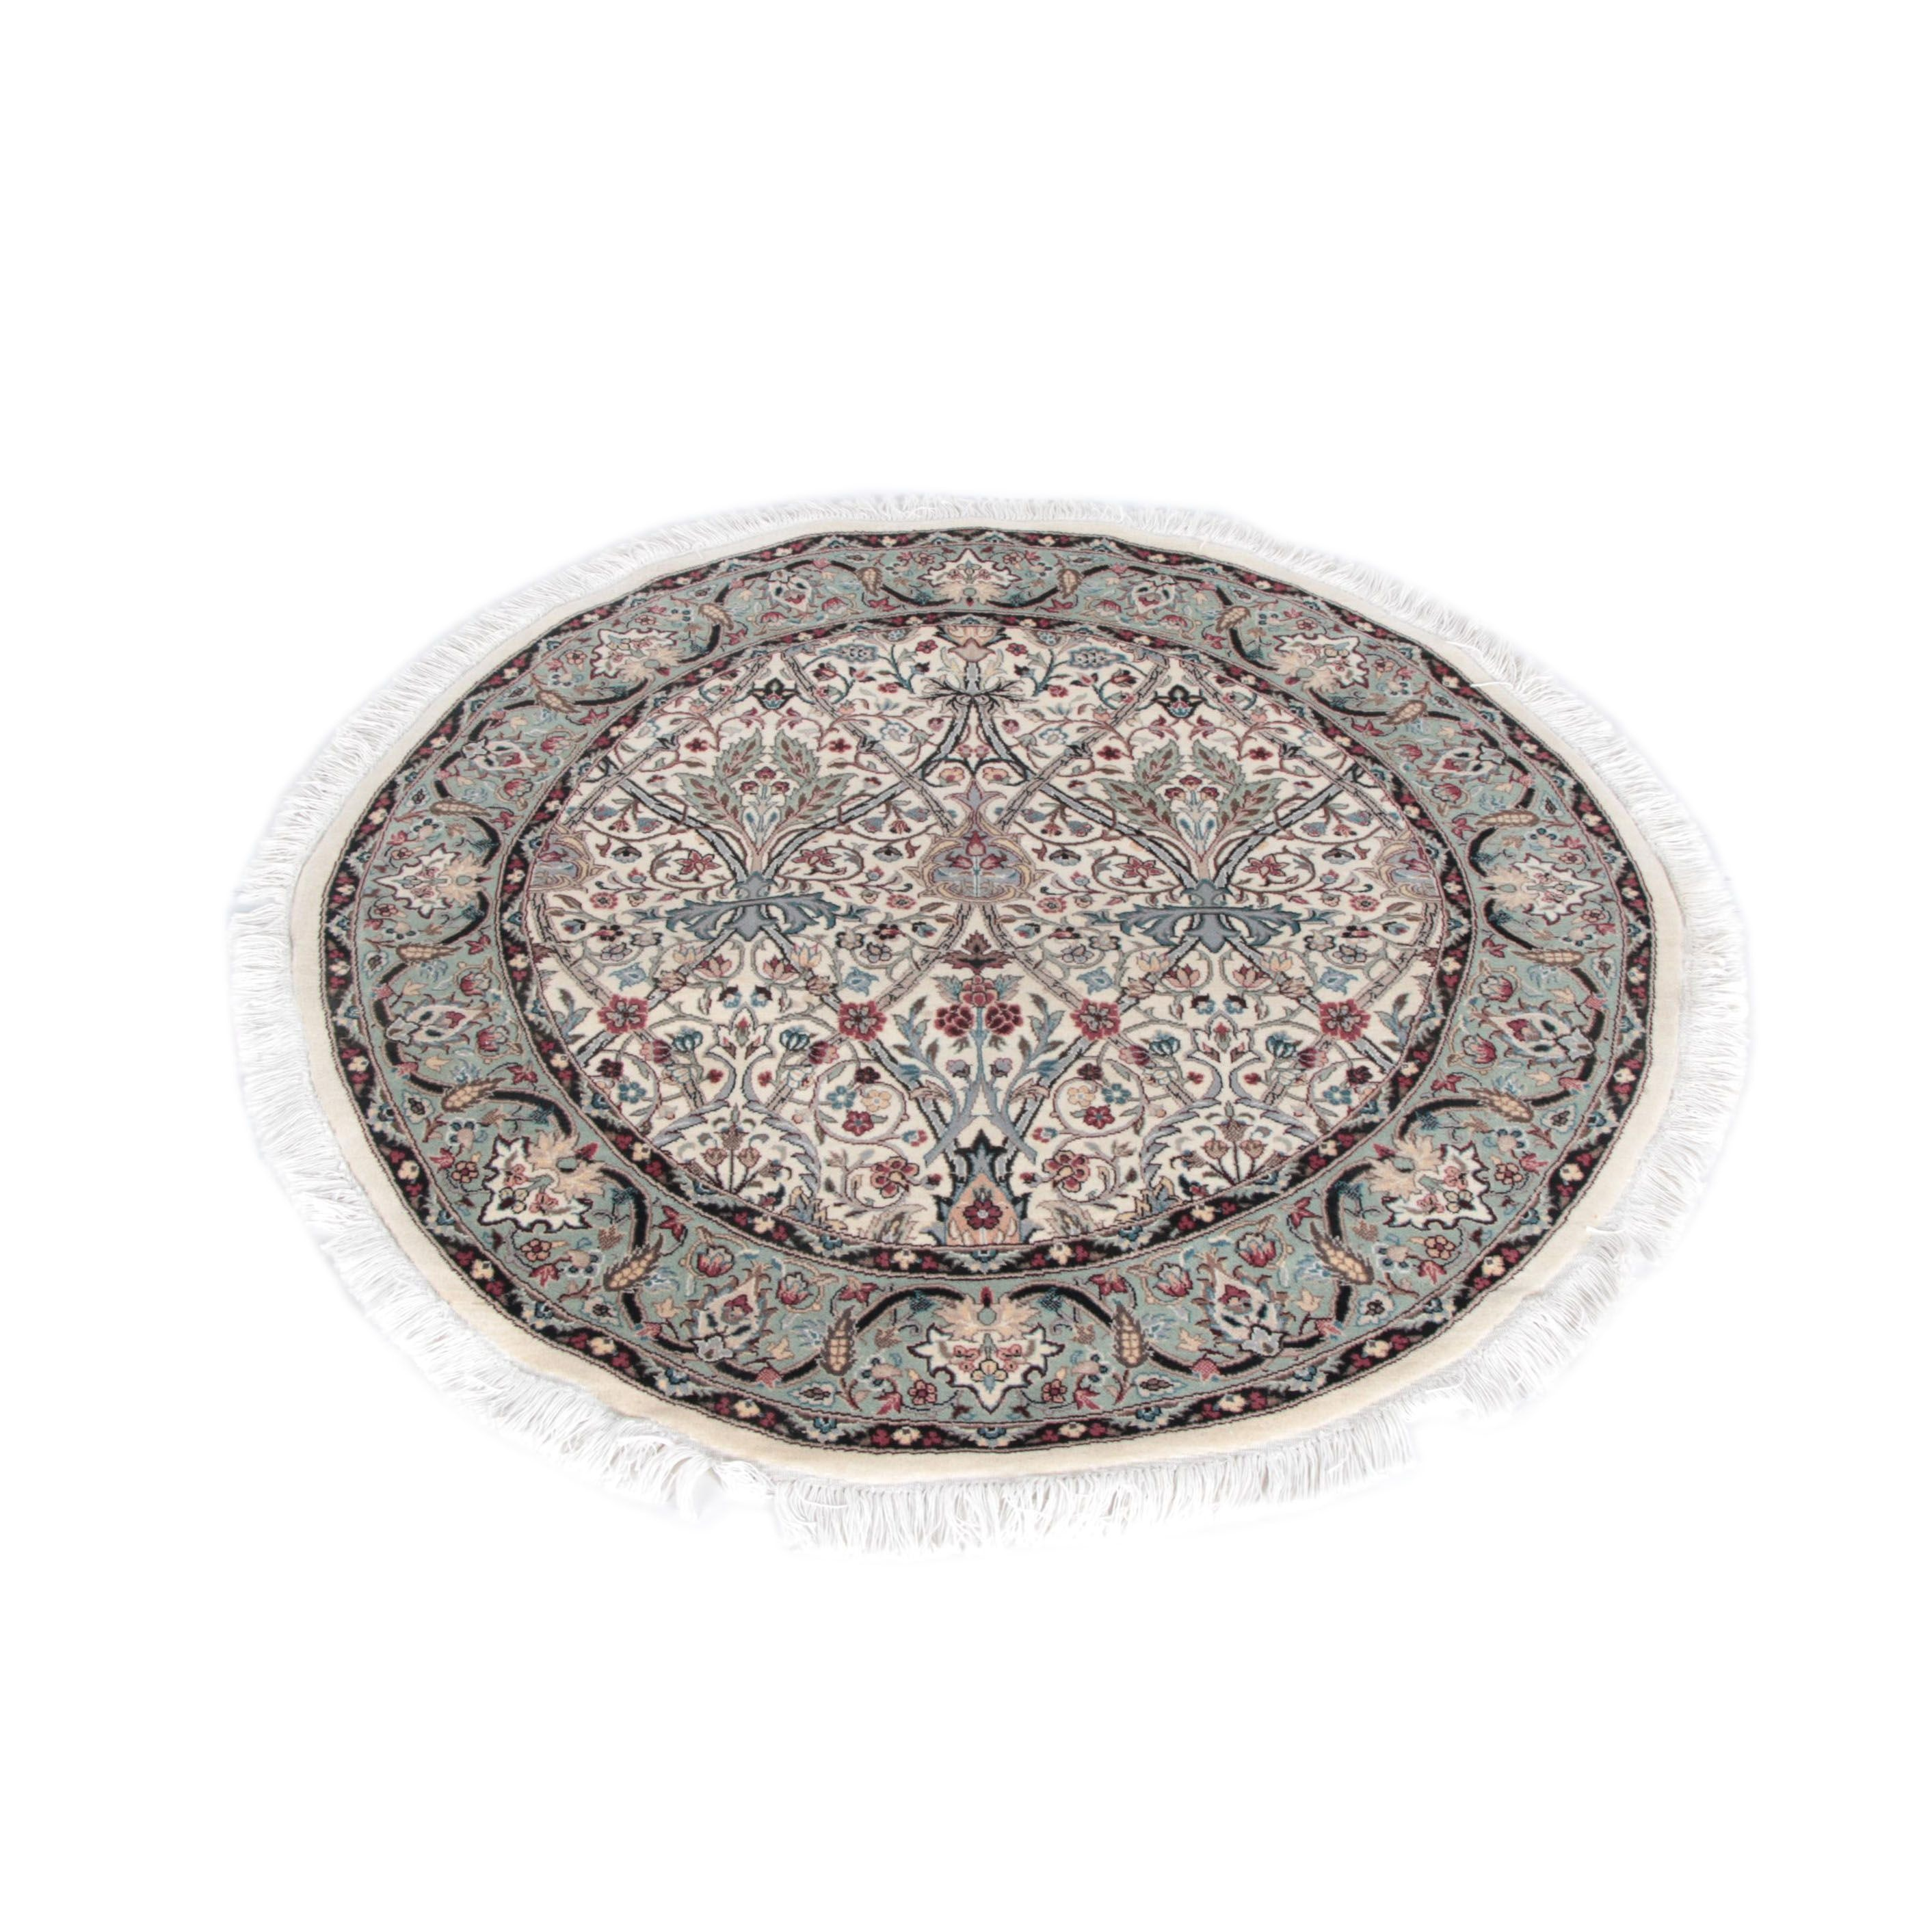 Finely Hand-Knotted Nain Round Wool Accent Rug